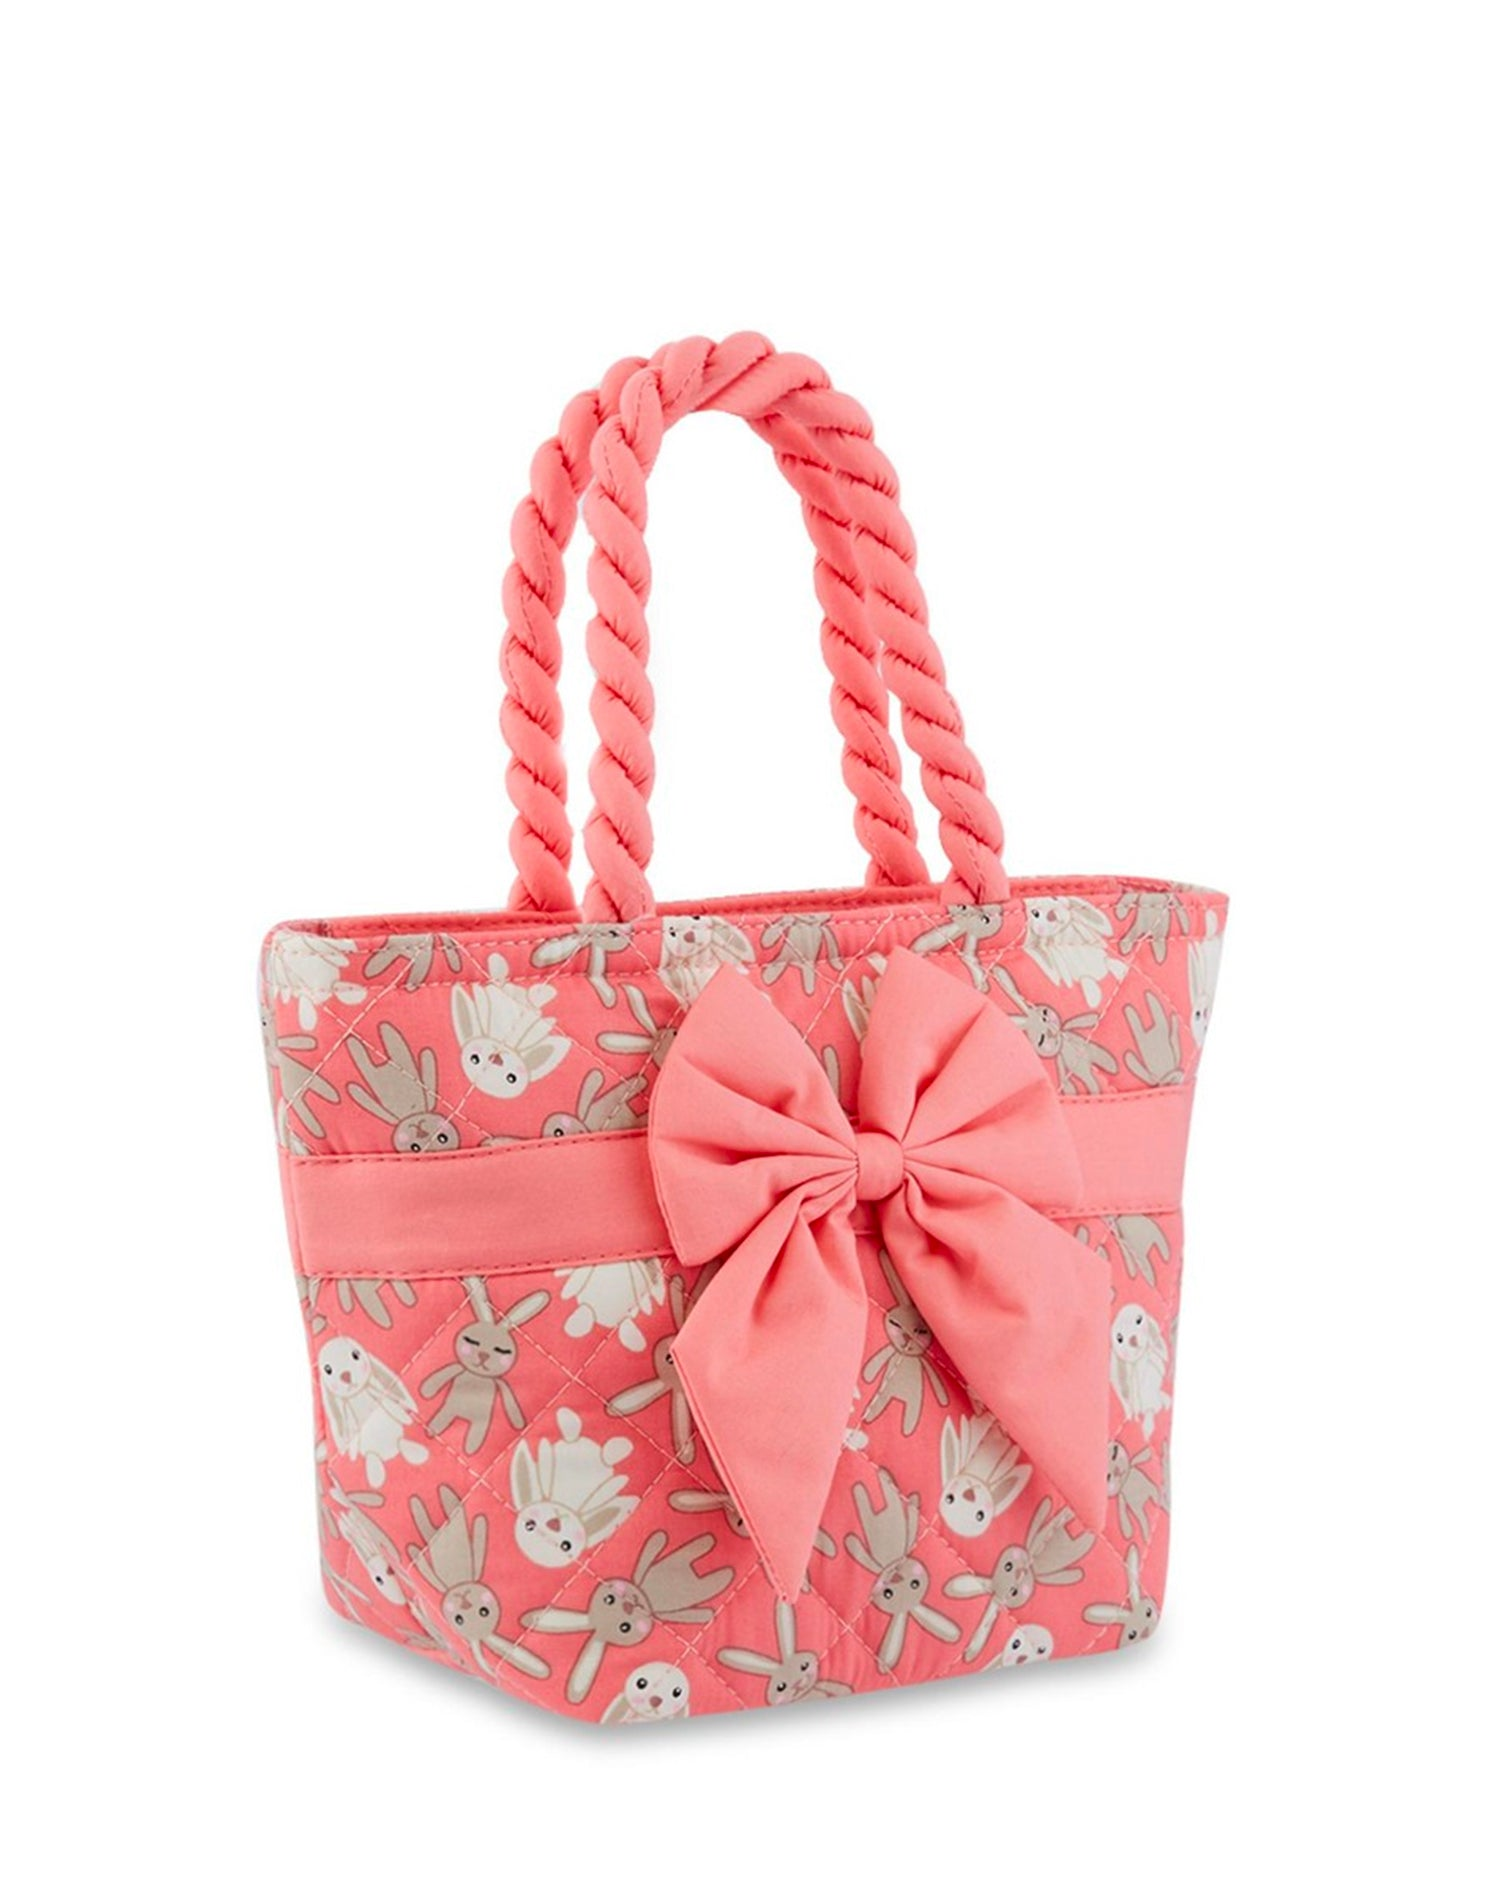 Bunny Printed Cotton Handbag.兔子棉布手提包